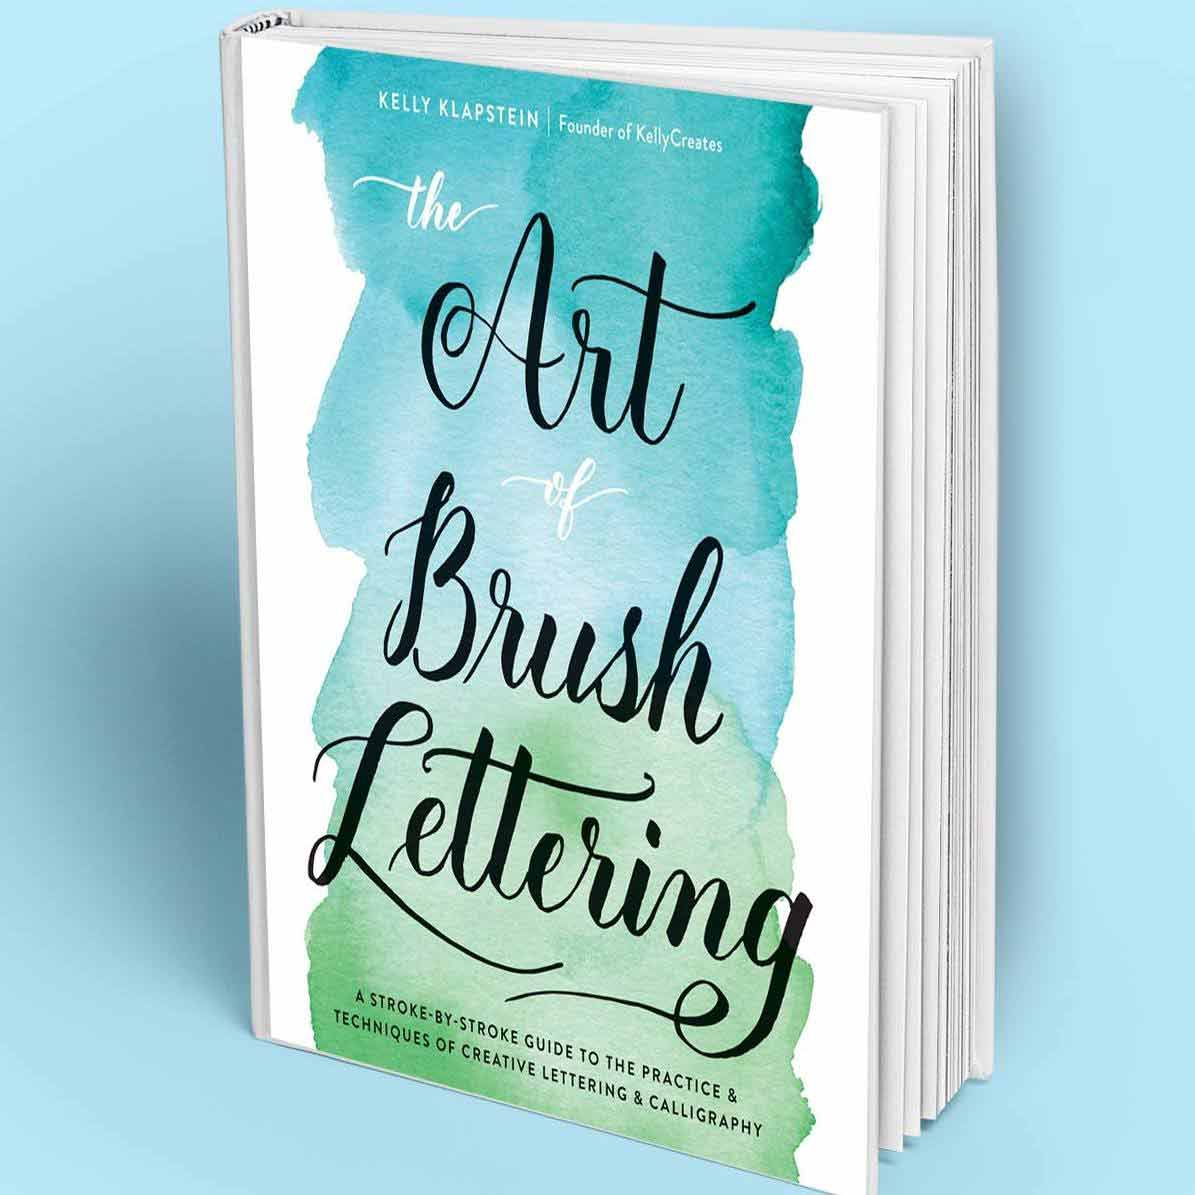 the art of brush lettering kelly klapstein kelly creates